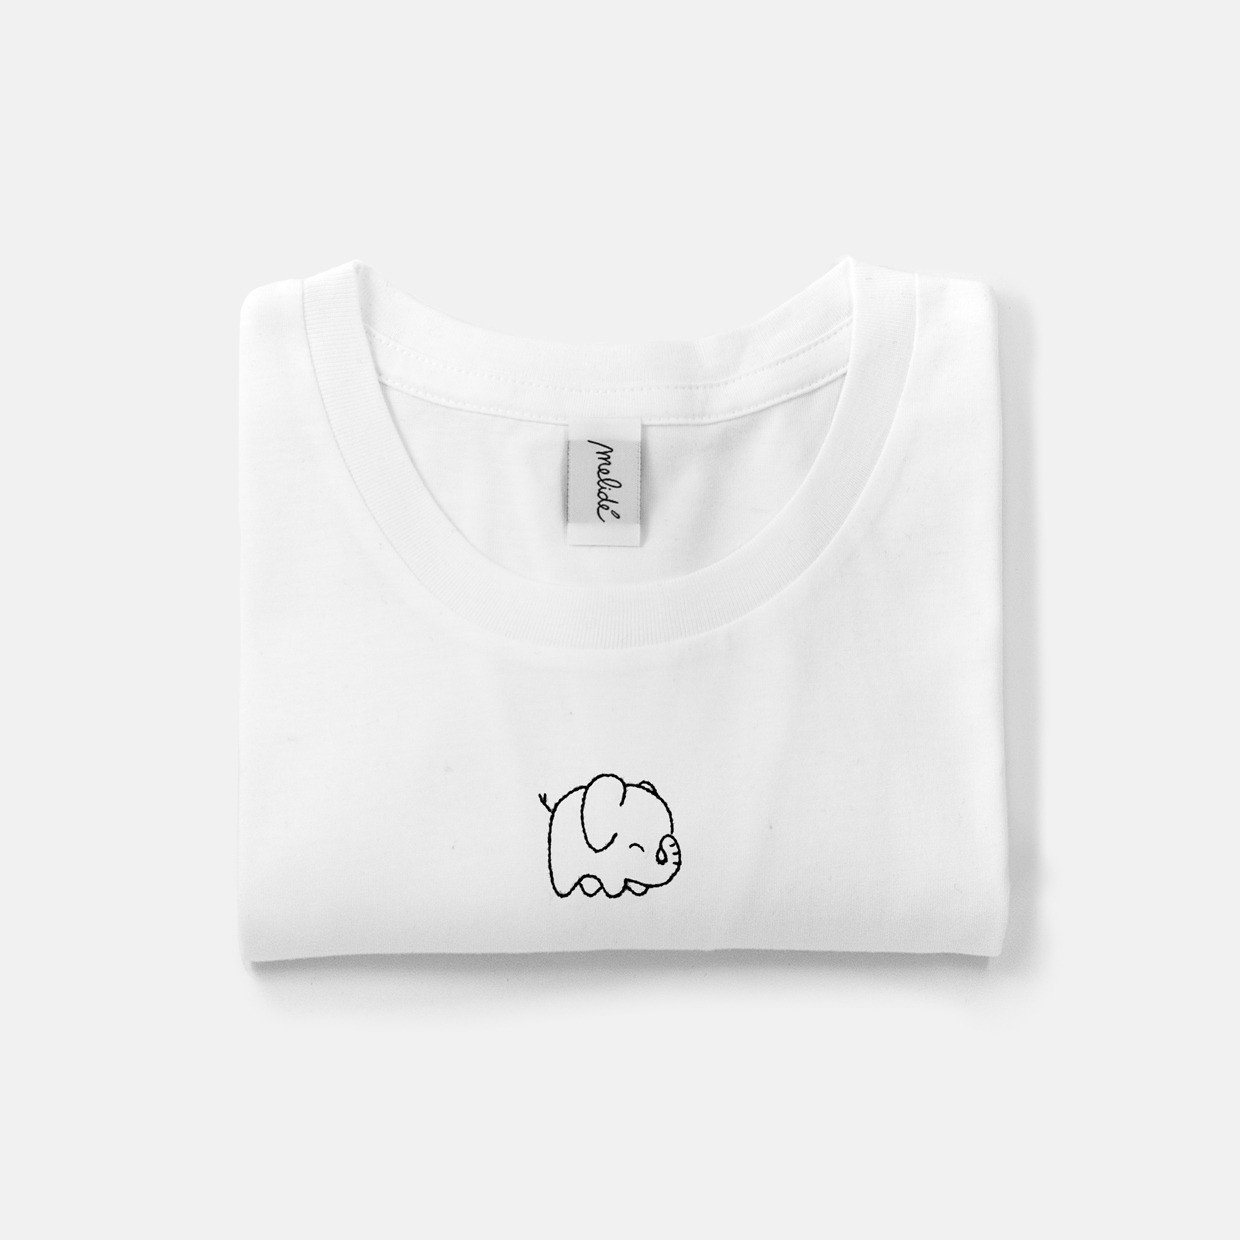 The ELEPHANT ultimate tee